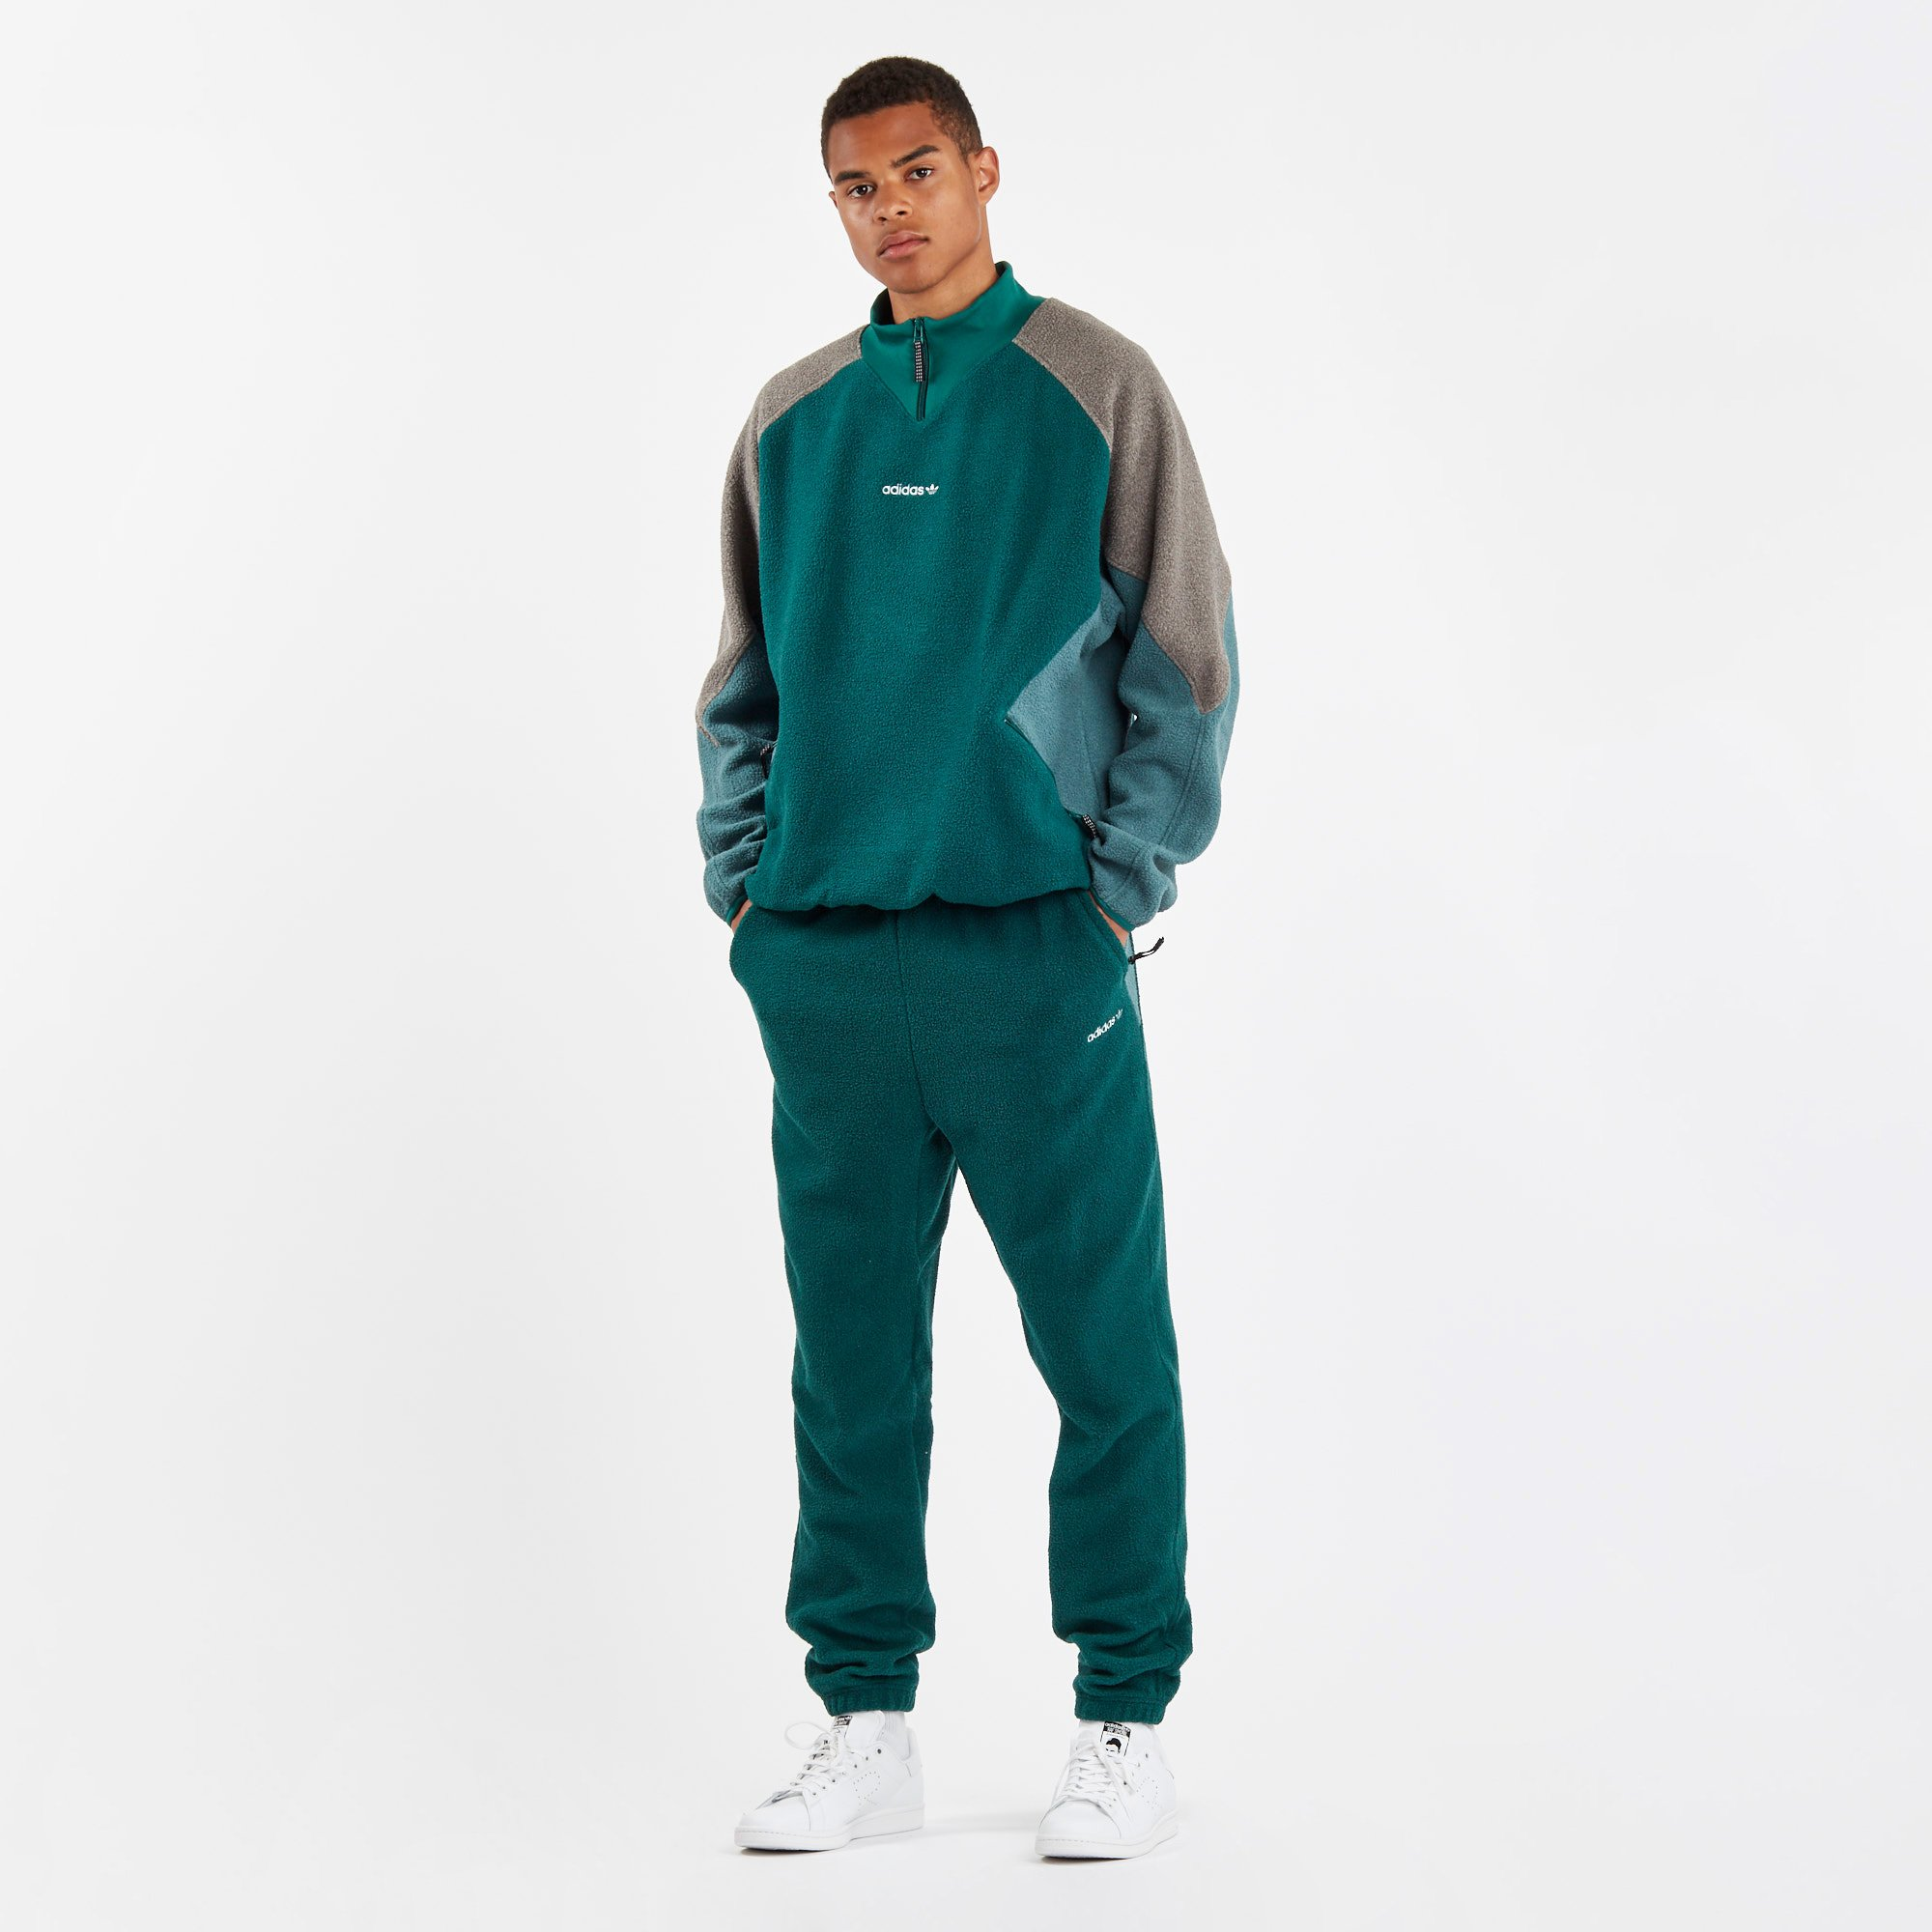 cola barro Interpretación  adidas EQT Polar Fleece Top - Dh5194 - Sneakersnstuff | sneakers &  streetwear online since 1999